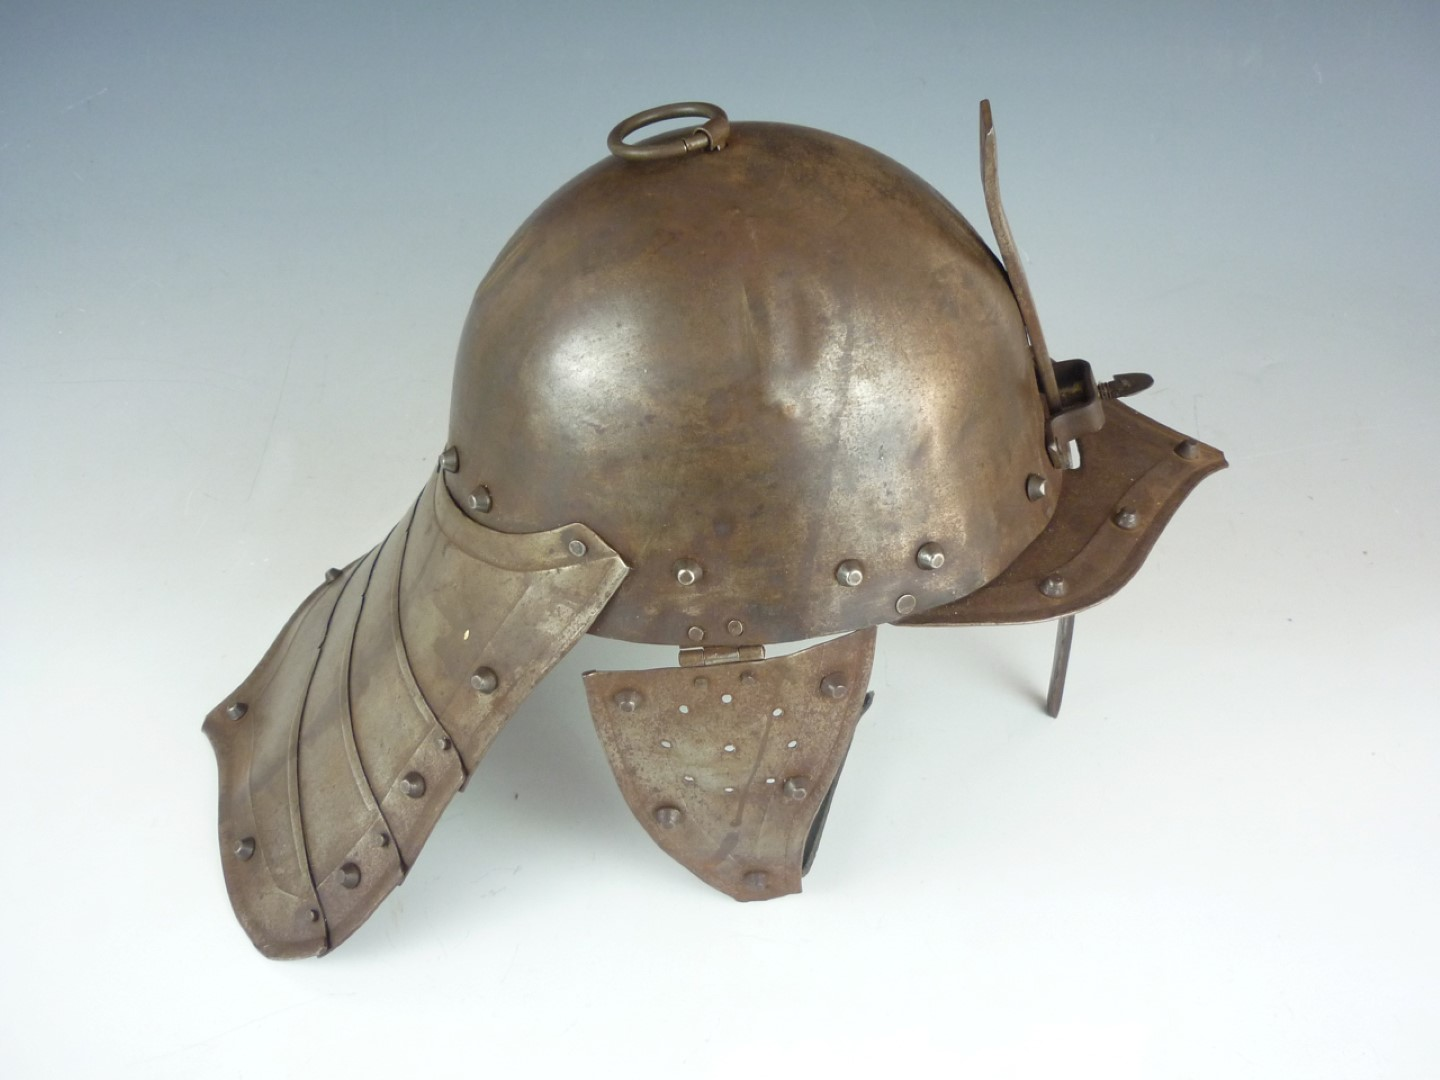 Lot 63 - An old reproduction English Civil War harquebusier's helmet, together with a pikeman's pott